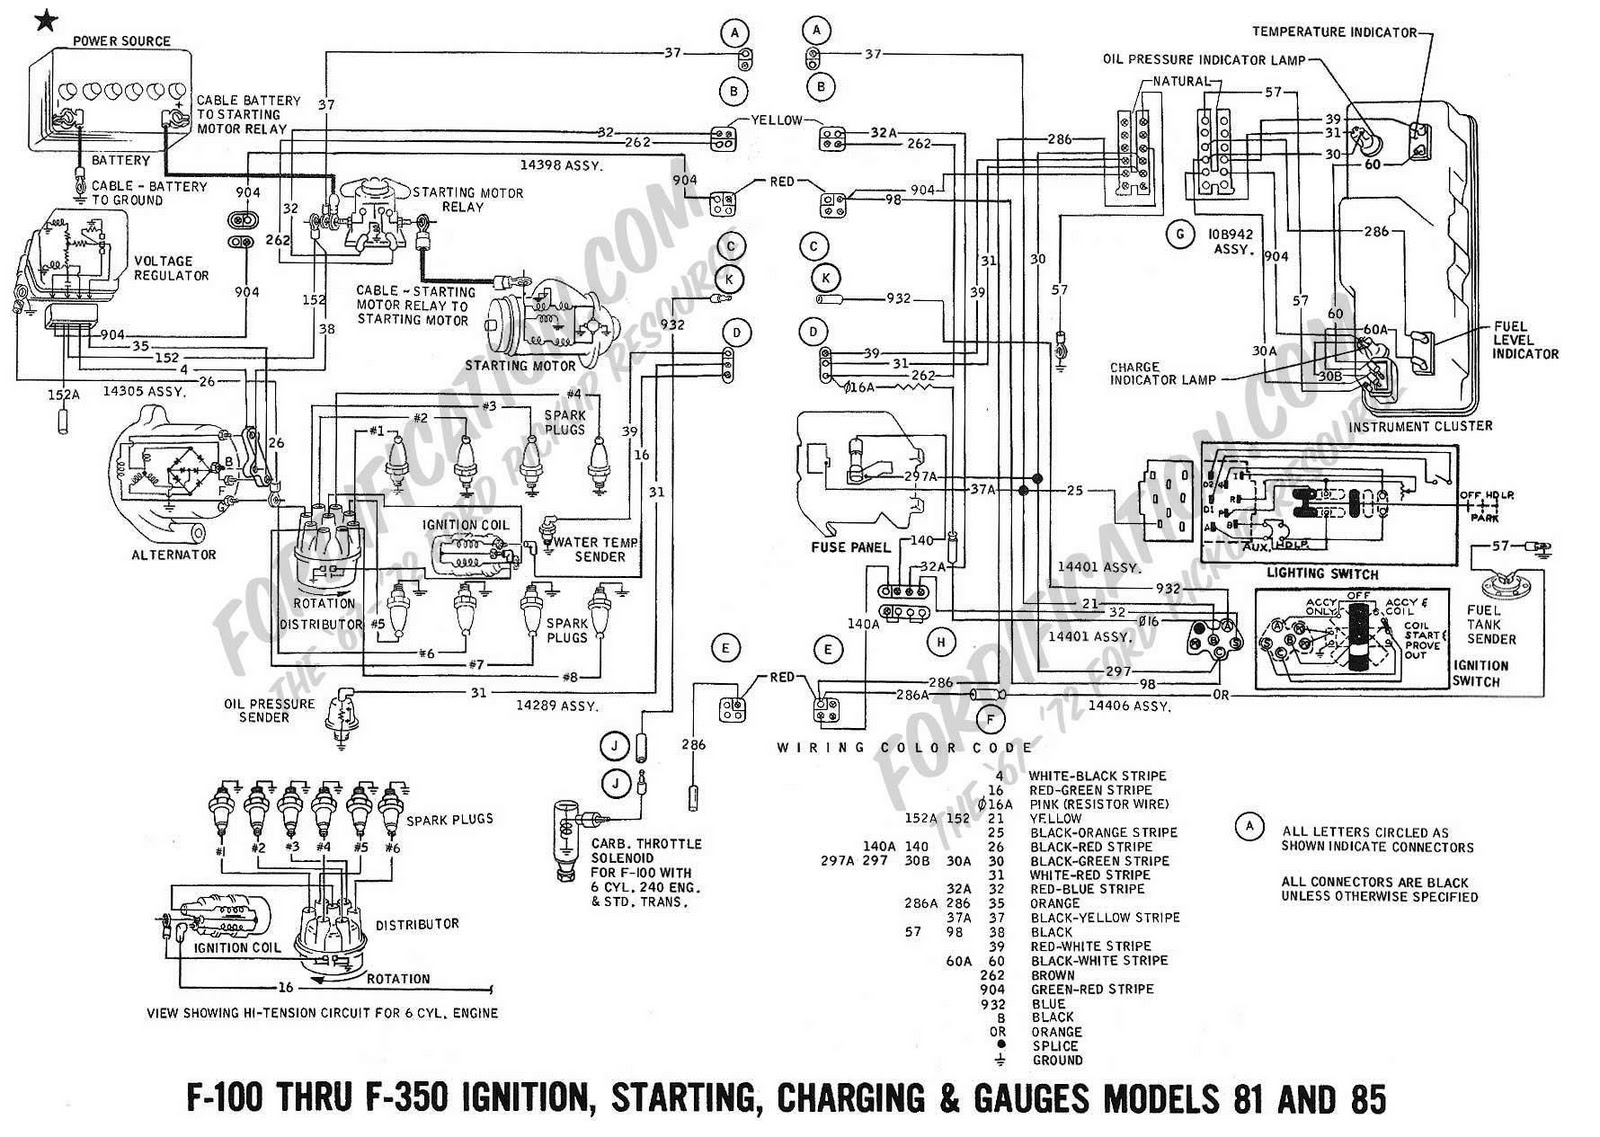 alternator wiring diagram 1966 ford pu wiring diagrams box 1968 pontiac catalina wiring diagram 1968 ford [ 1600 x 1137 Pixel ]